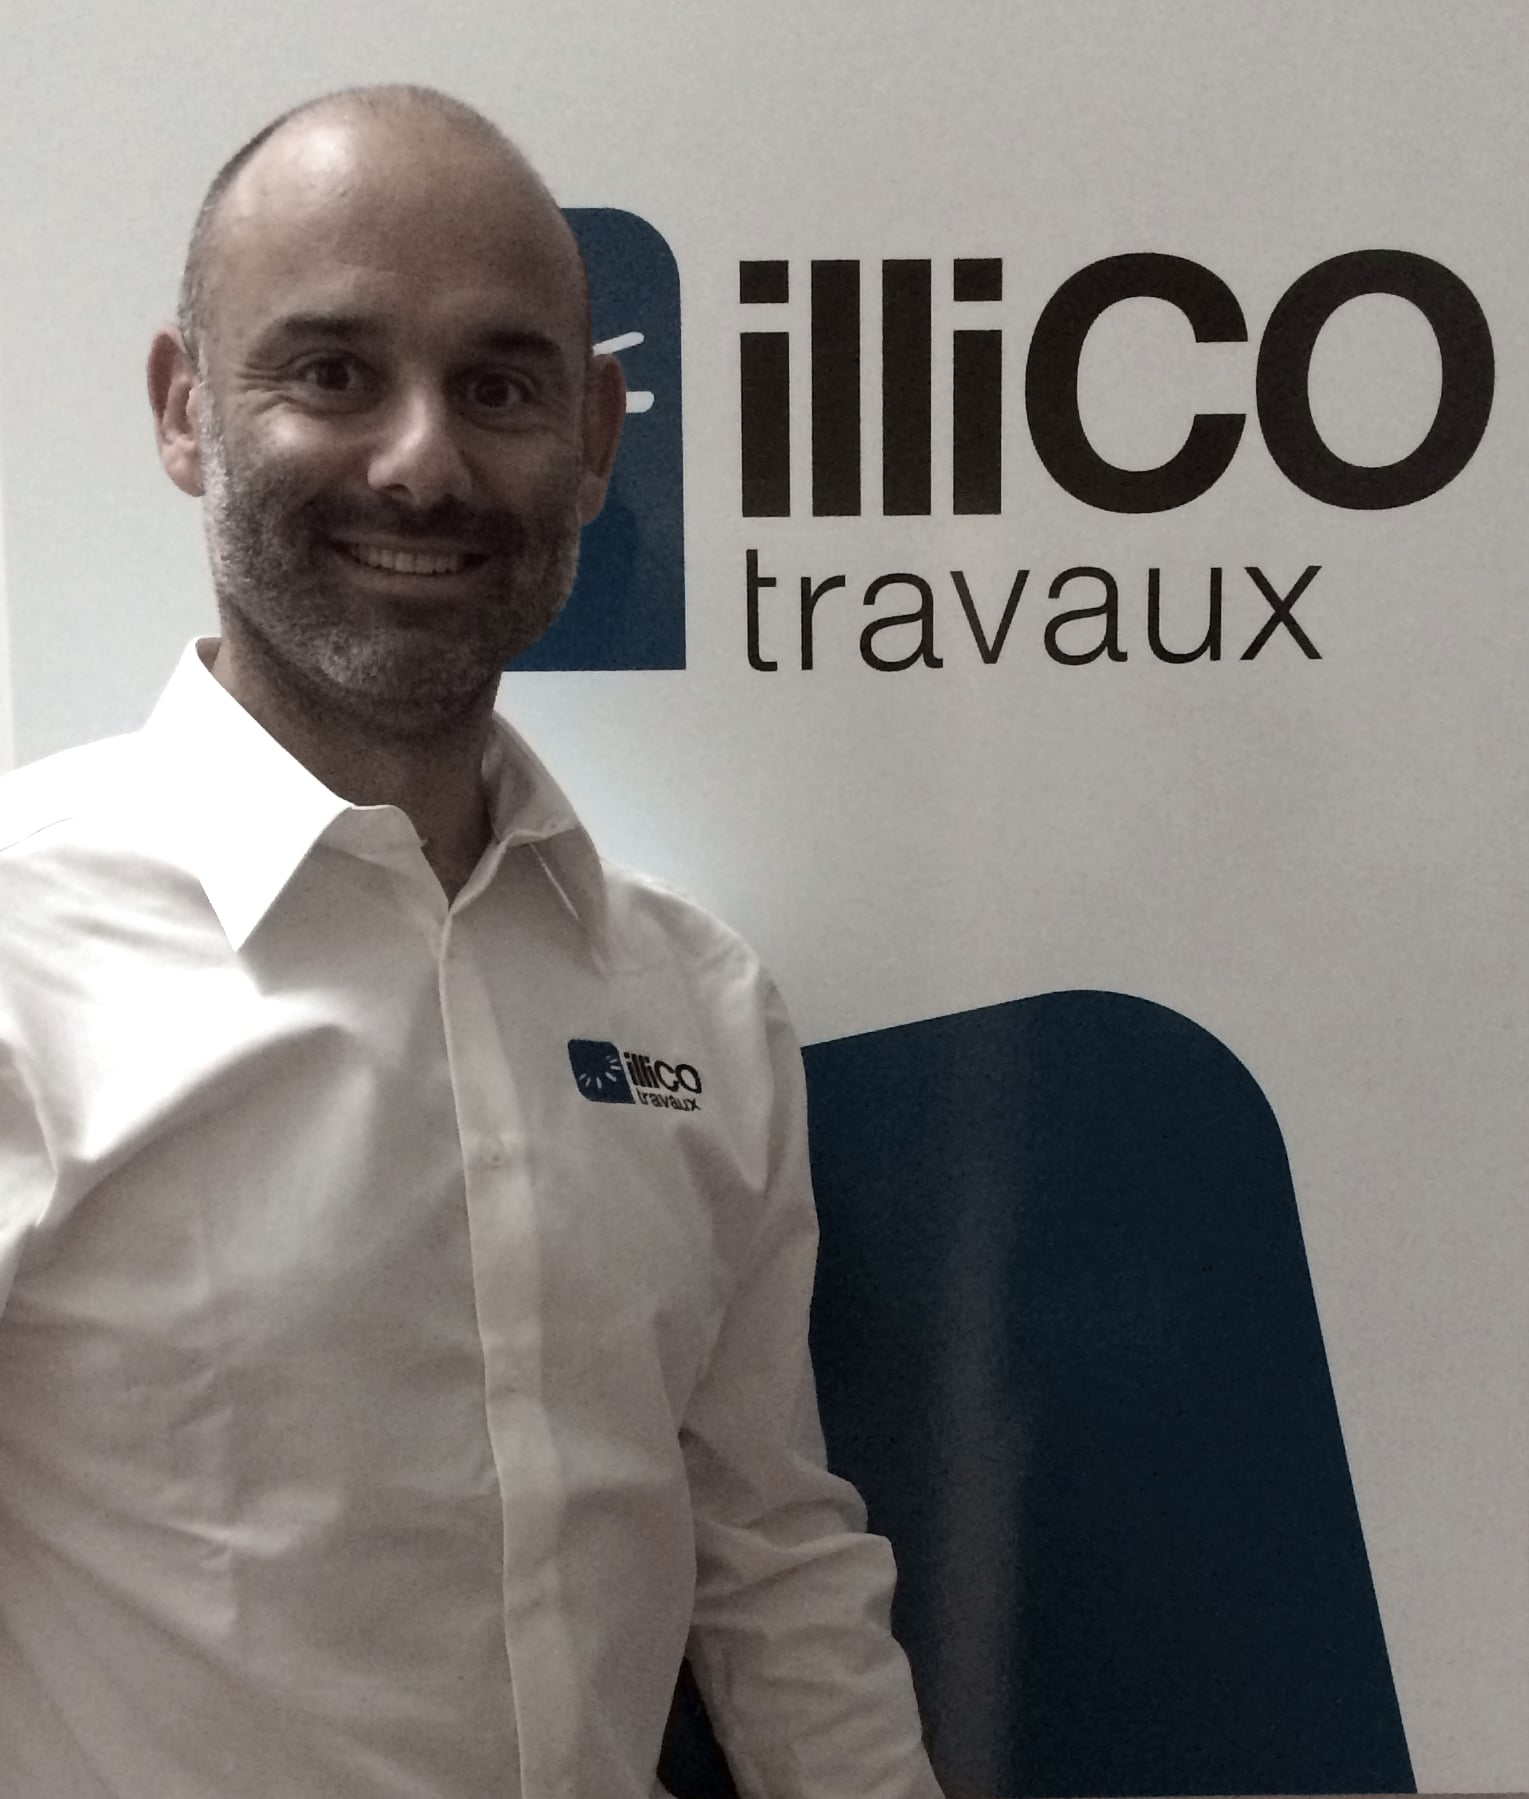 illiCO travaux Grenoble